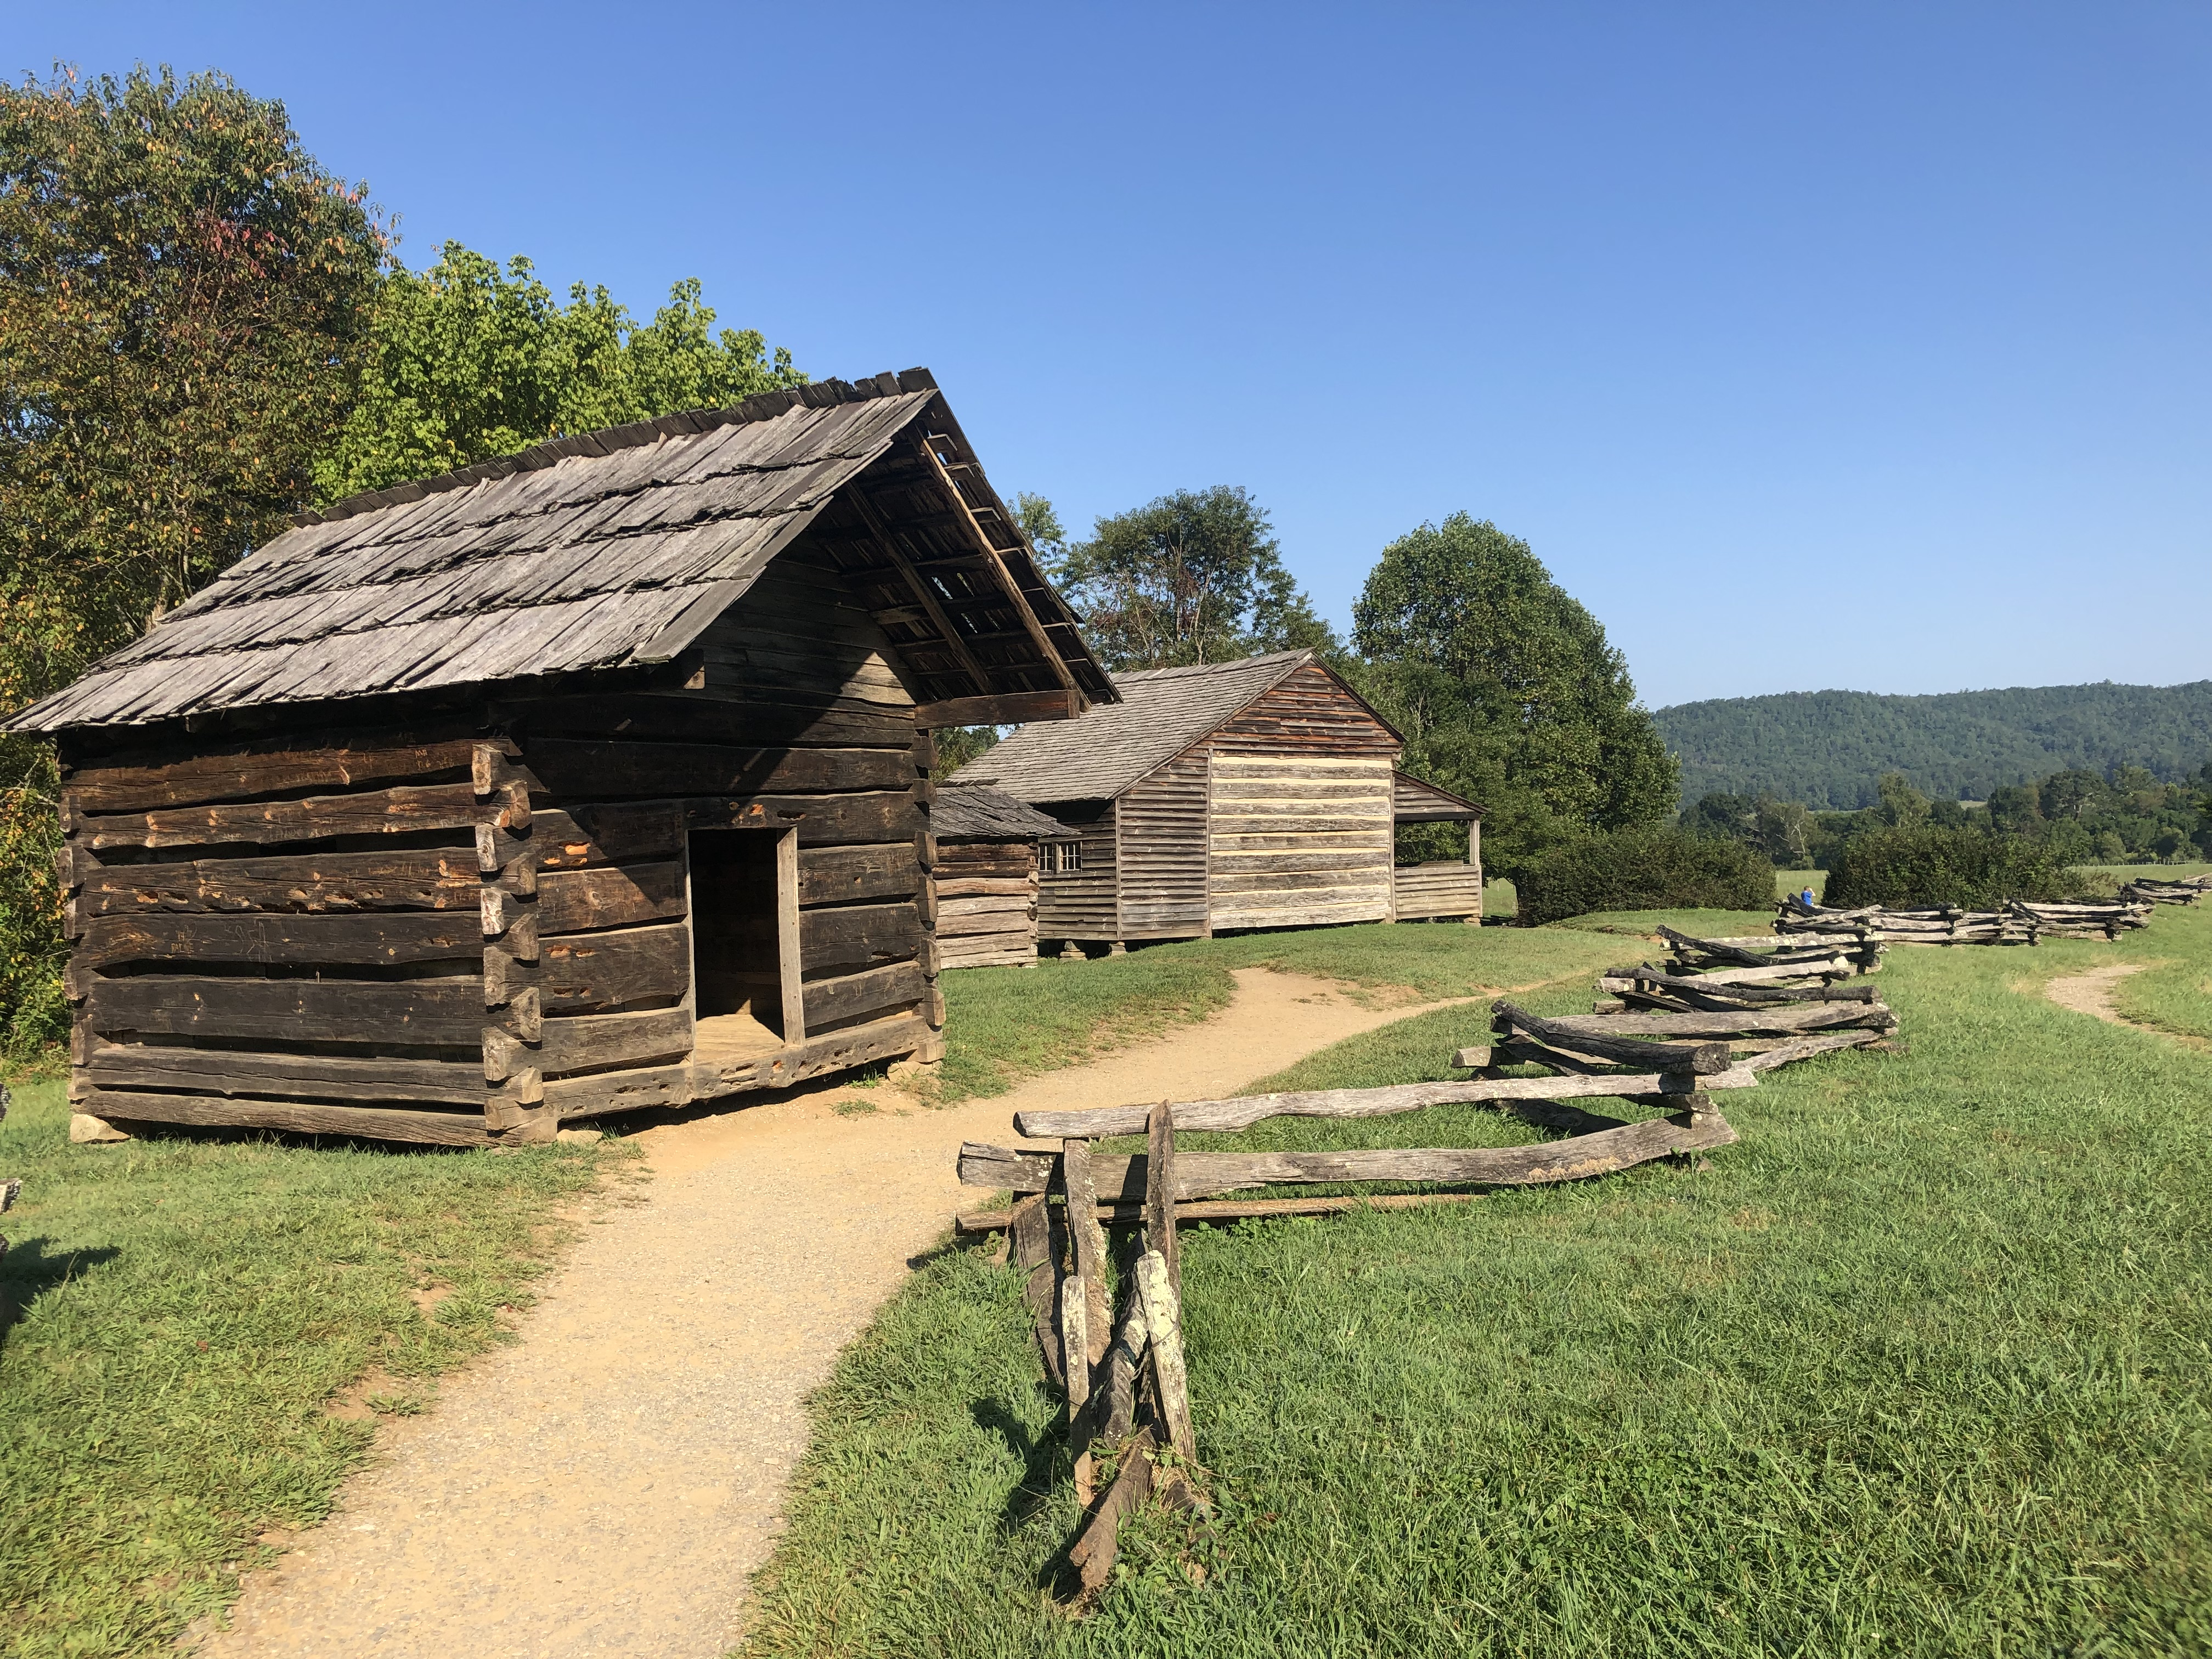 Old homestead in The Great Smoky Mountains National Park